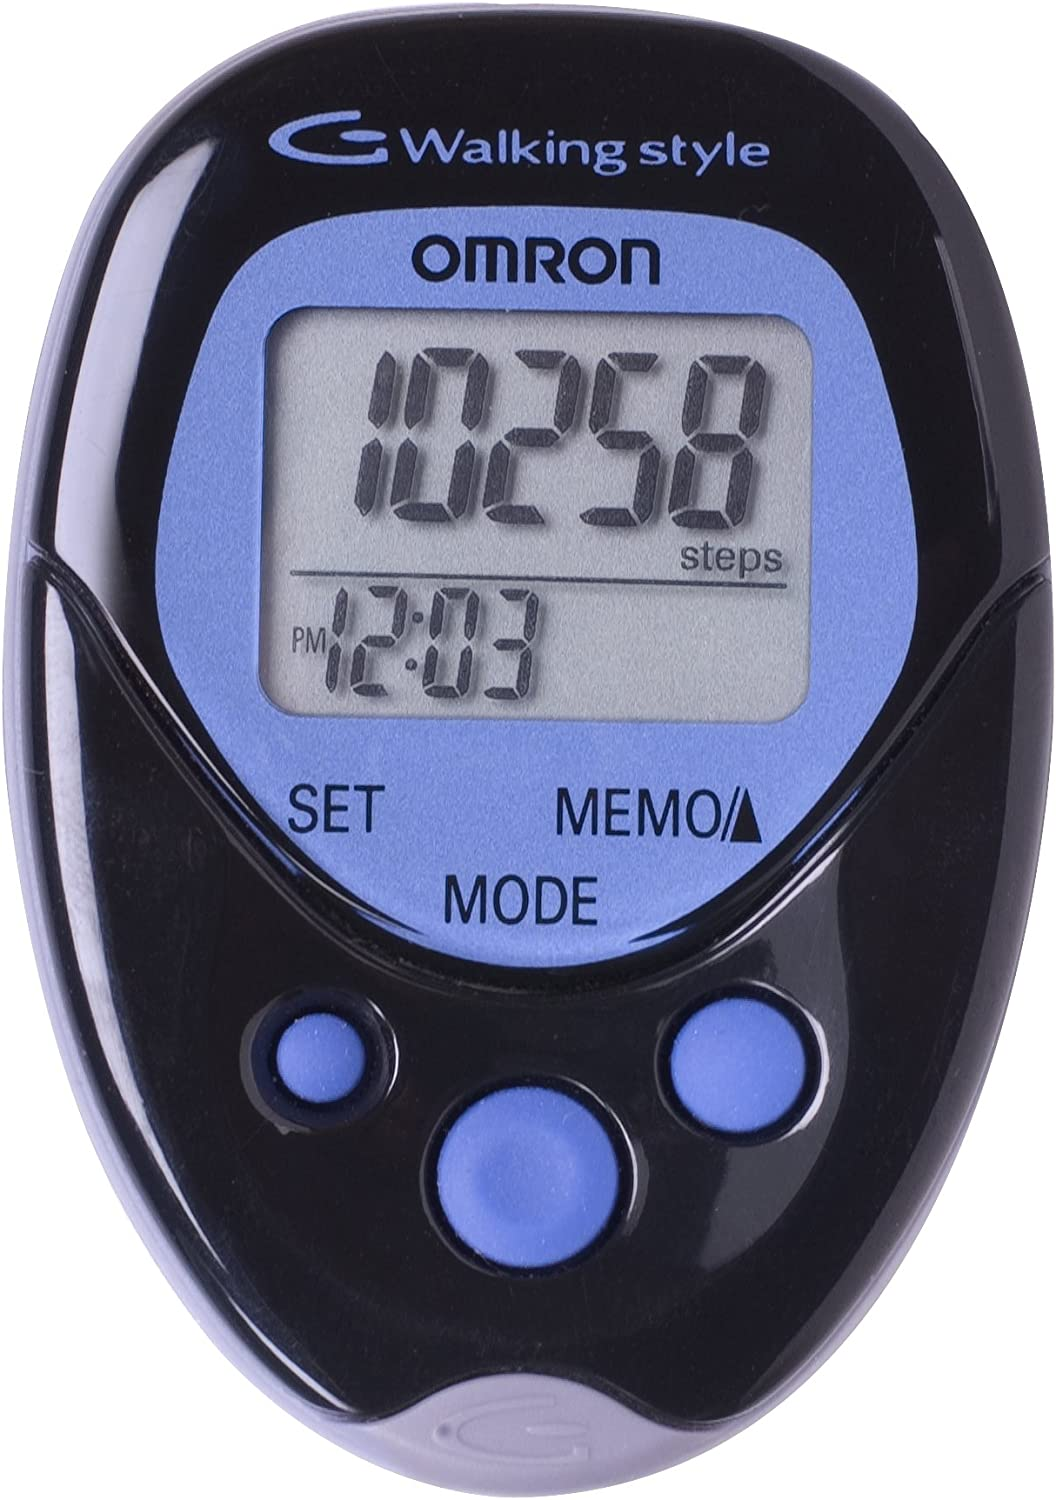 Omron Hj-113 Selling rankings Pocket Pedometer Walking Count Black Max 46% OFF Style Pa 1